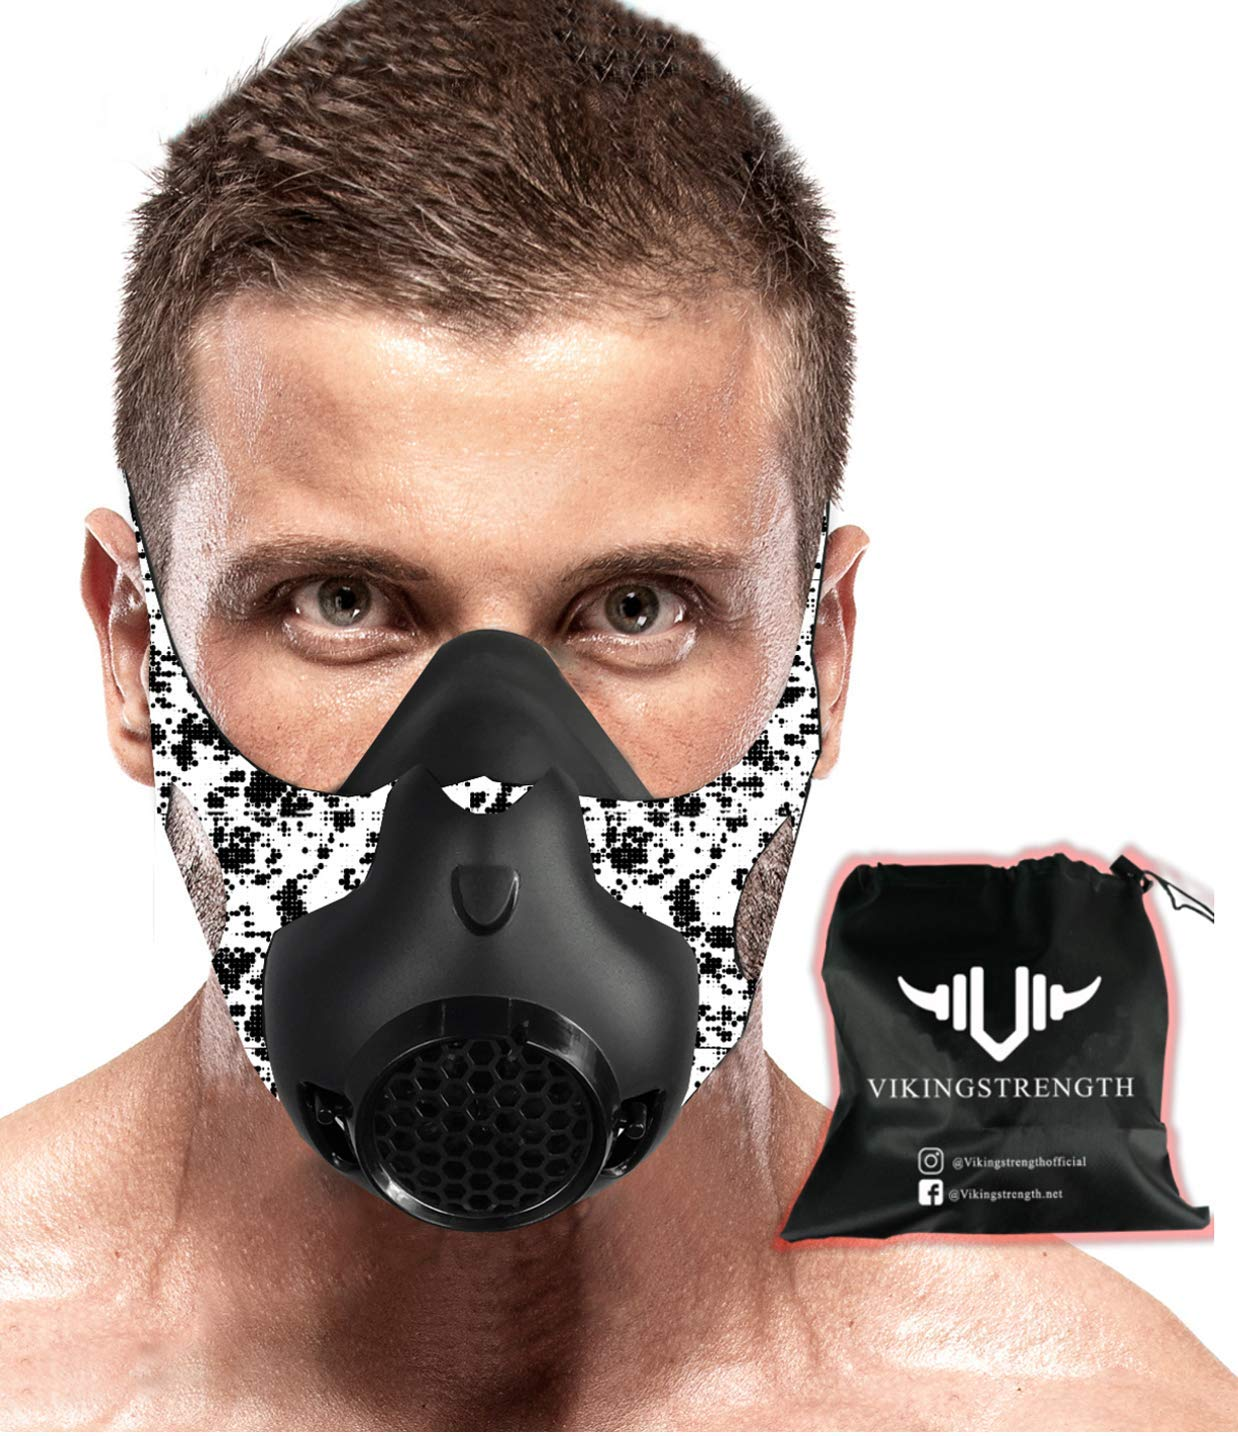 Review of Vikingstrength New 24 Levels Training Workout Mask for Running Biking MMA Endurance